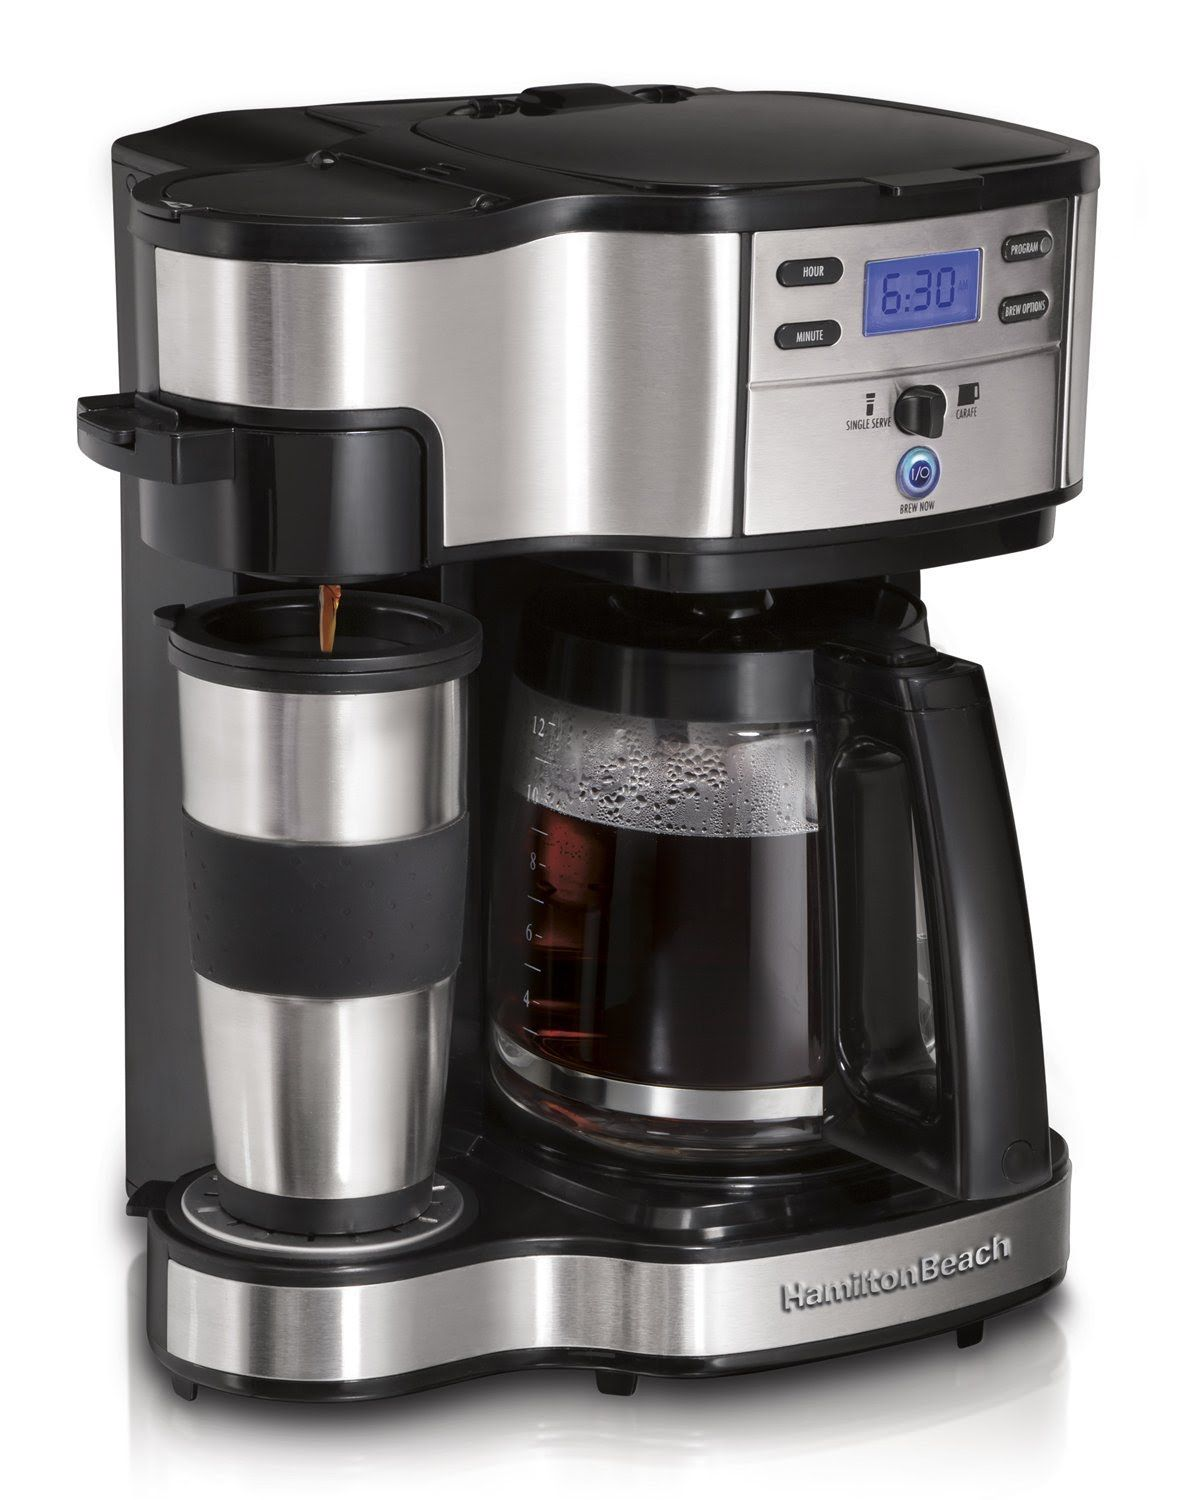 Top 5 Best Grind and Brew Coffee Maker 2016 Reviews